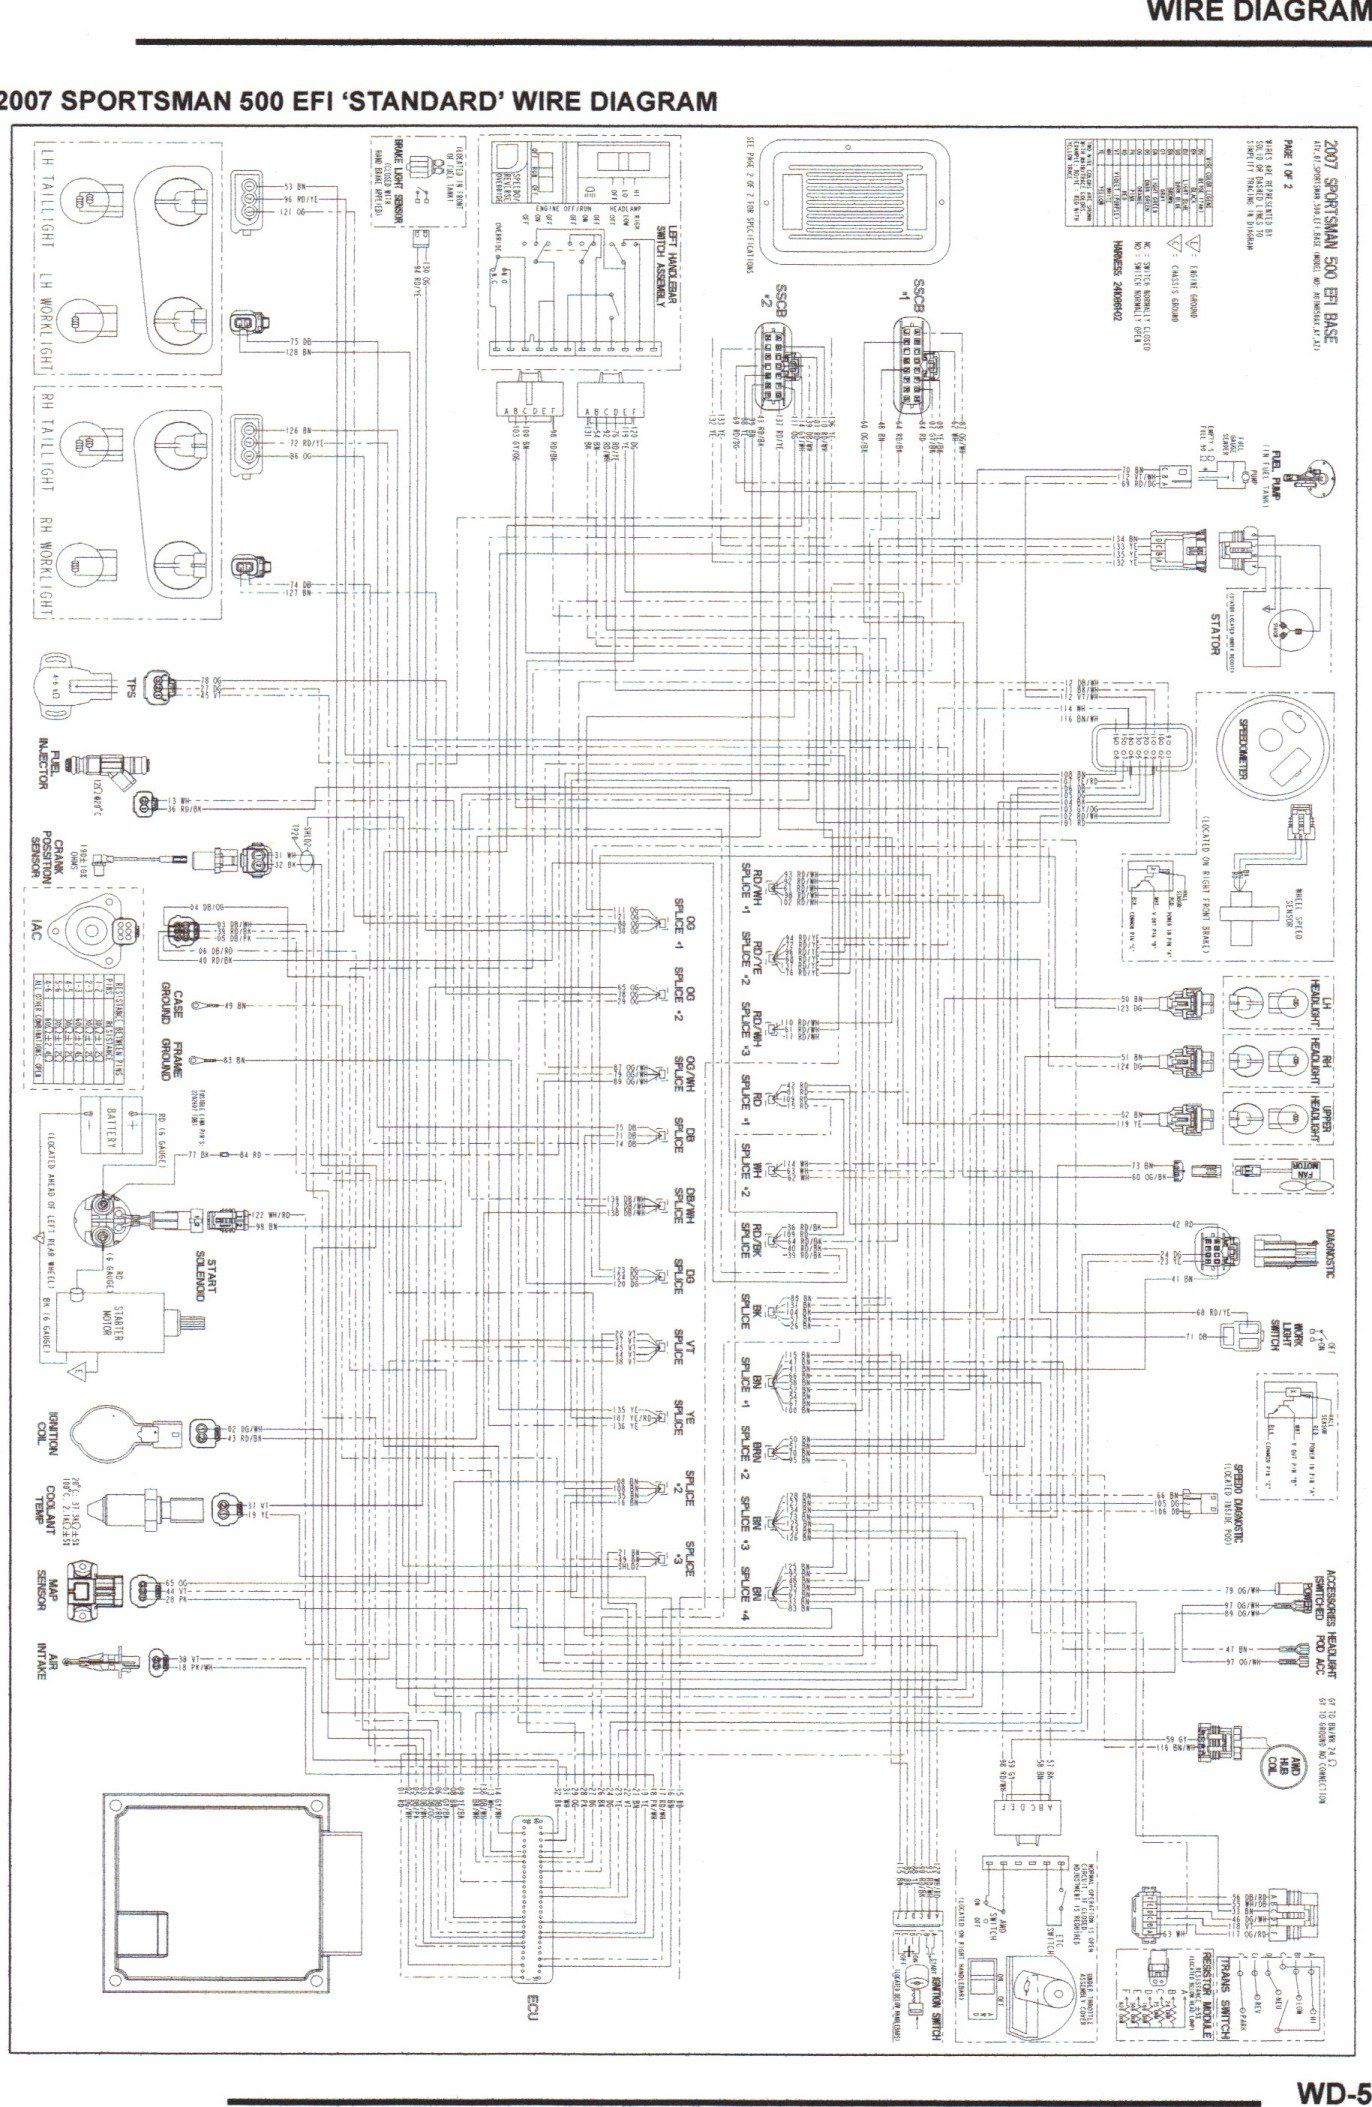 wrg 9165] predator 500 wiring diagram 2004 Polaris Predator 500 Wiring Diagram 2004 polaris sportsman 500 wiring